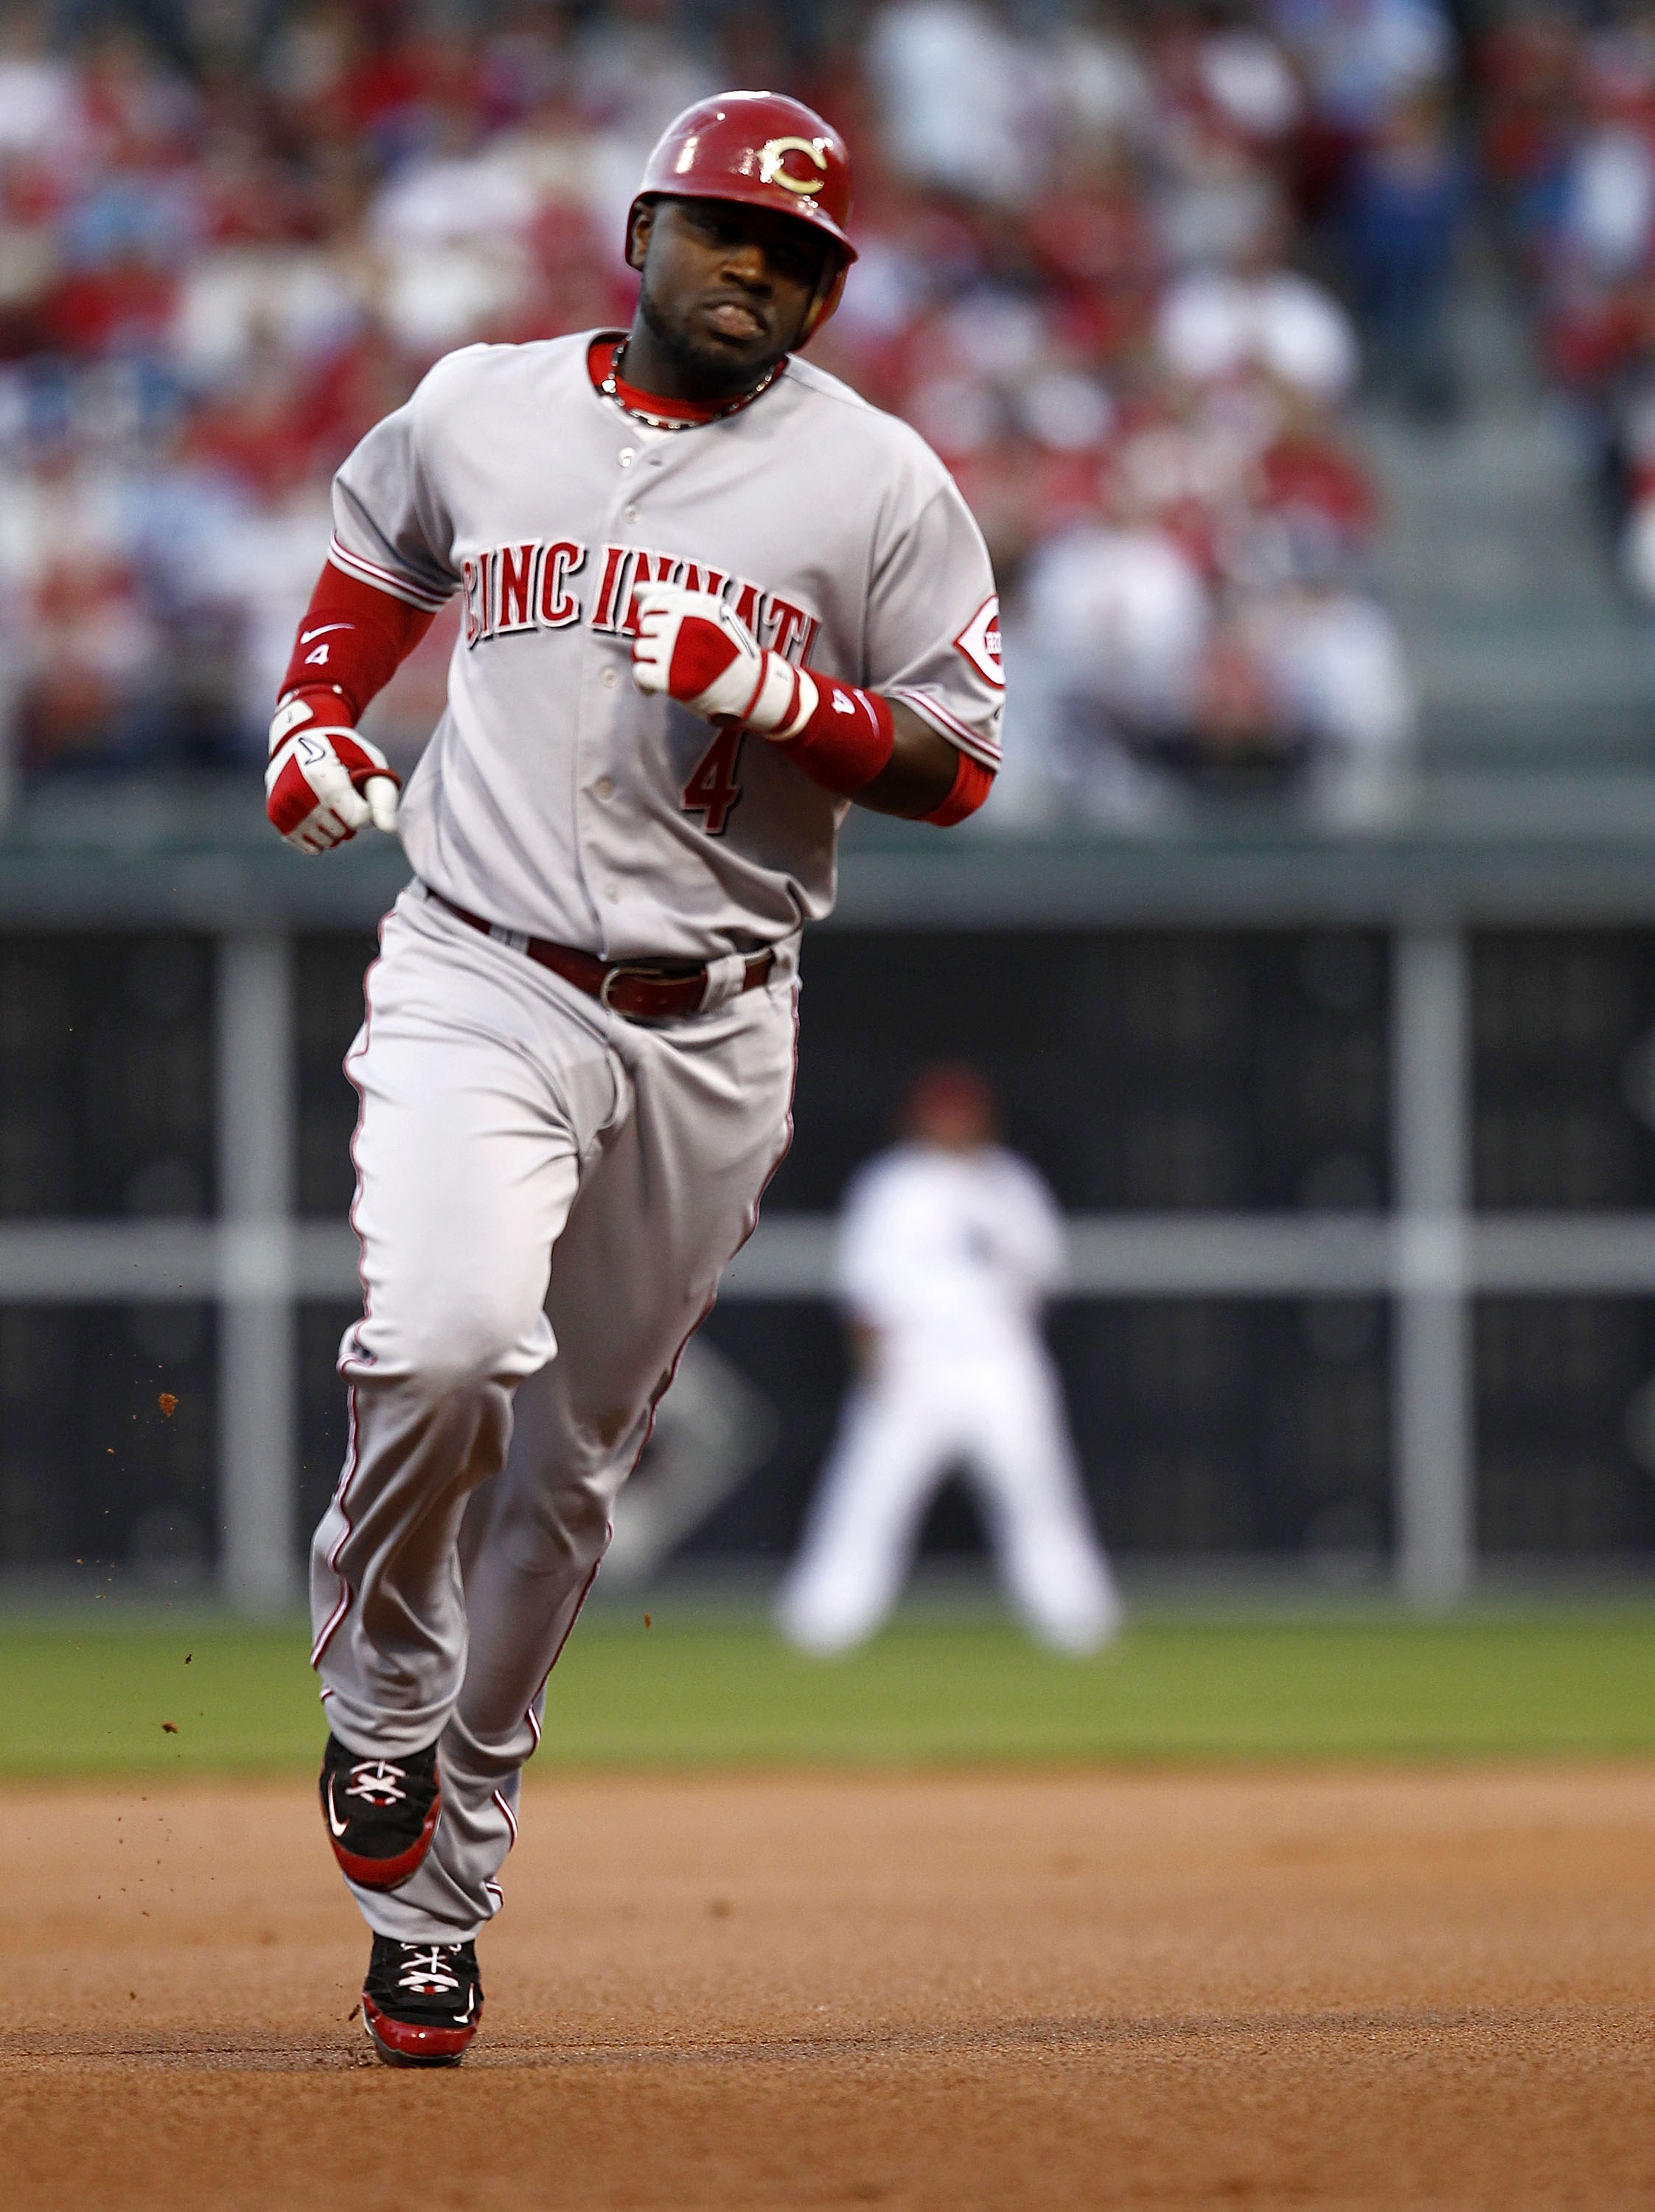 Will the Cincinnati Reds be able to lock up their star second baseman long-term?